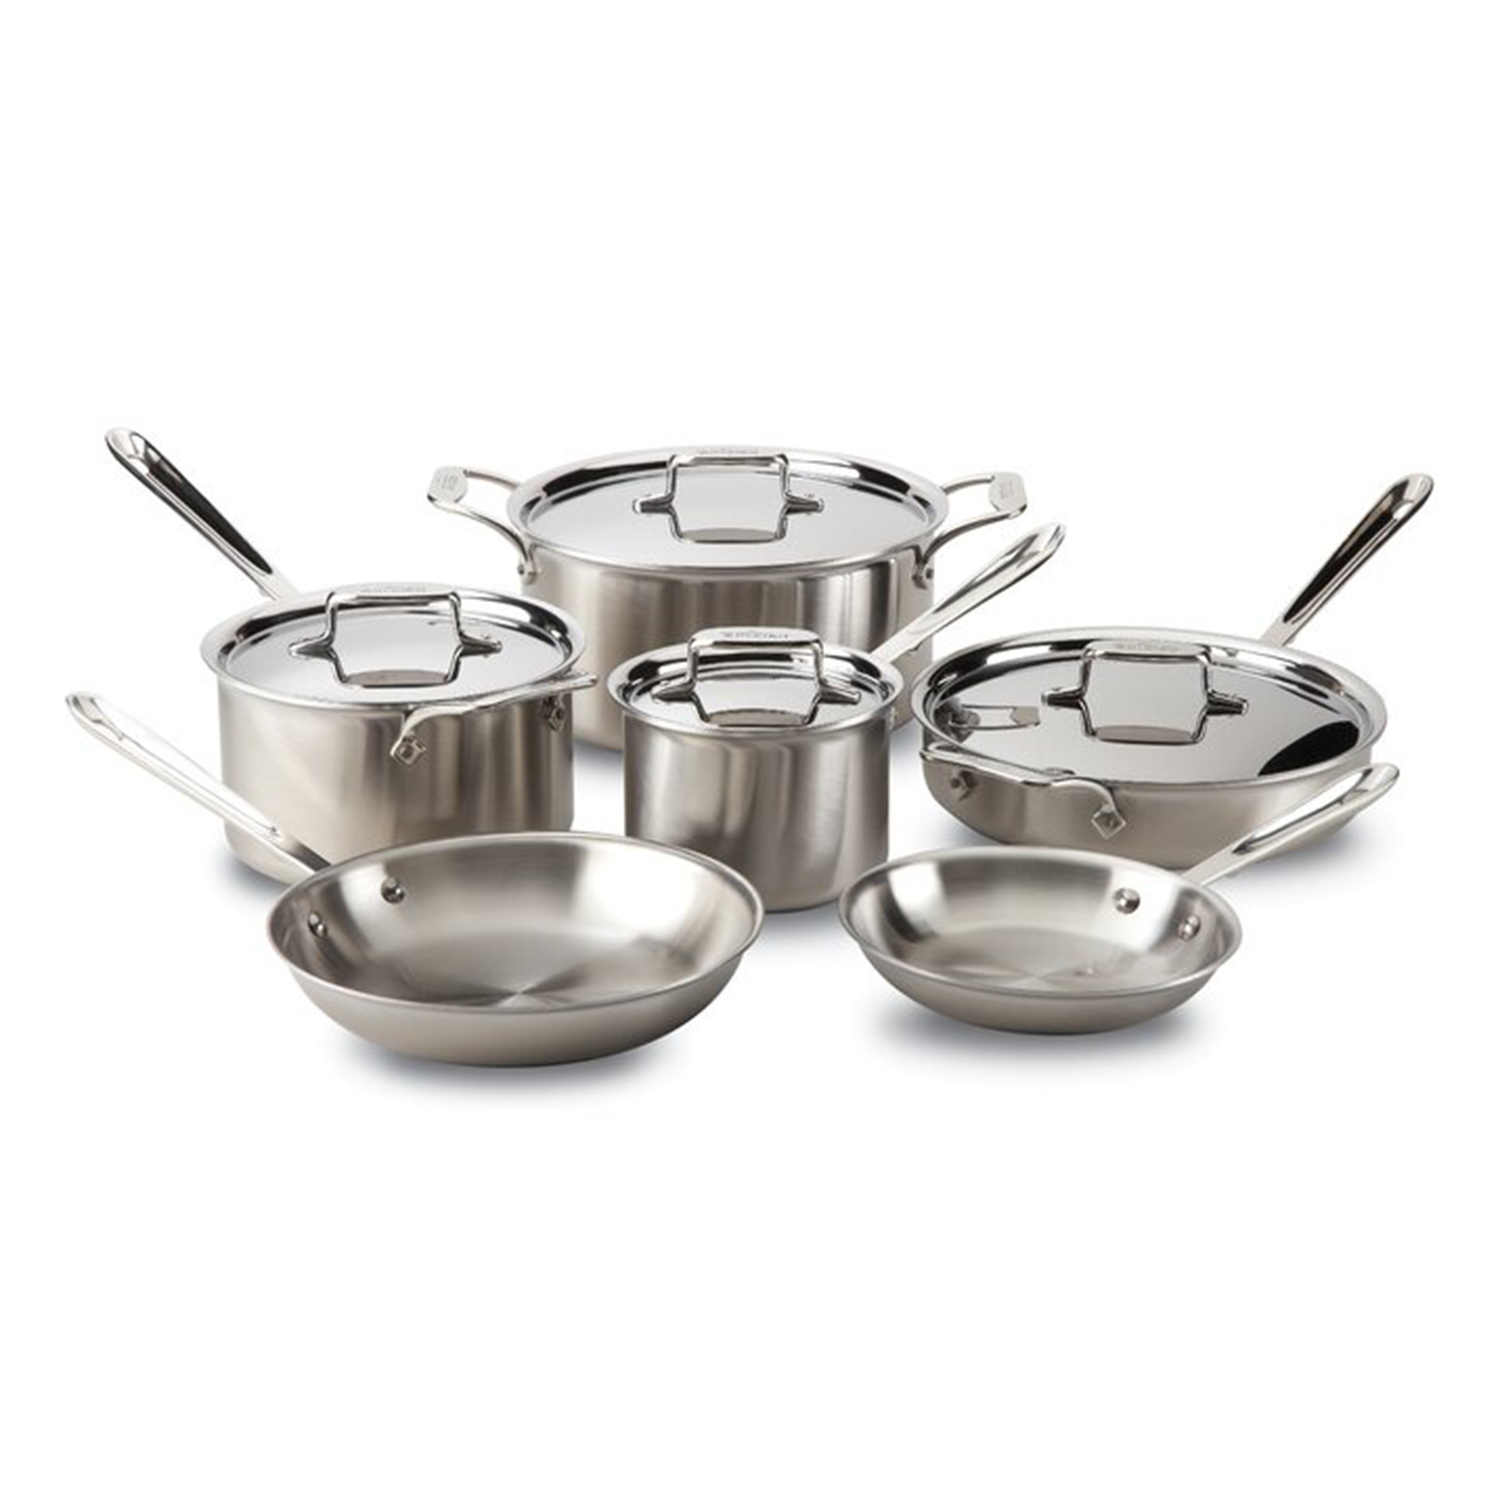 All-Clad D5 Stainless® Brushed 10 Piece Aluminum Cookware Set